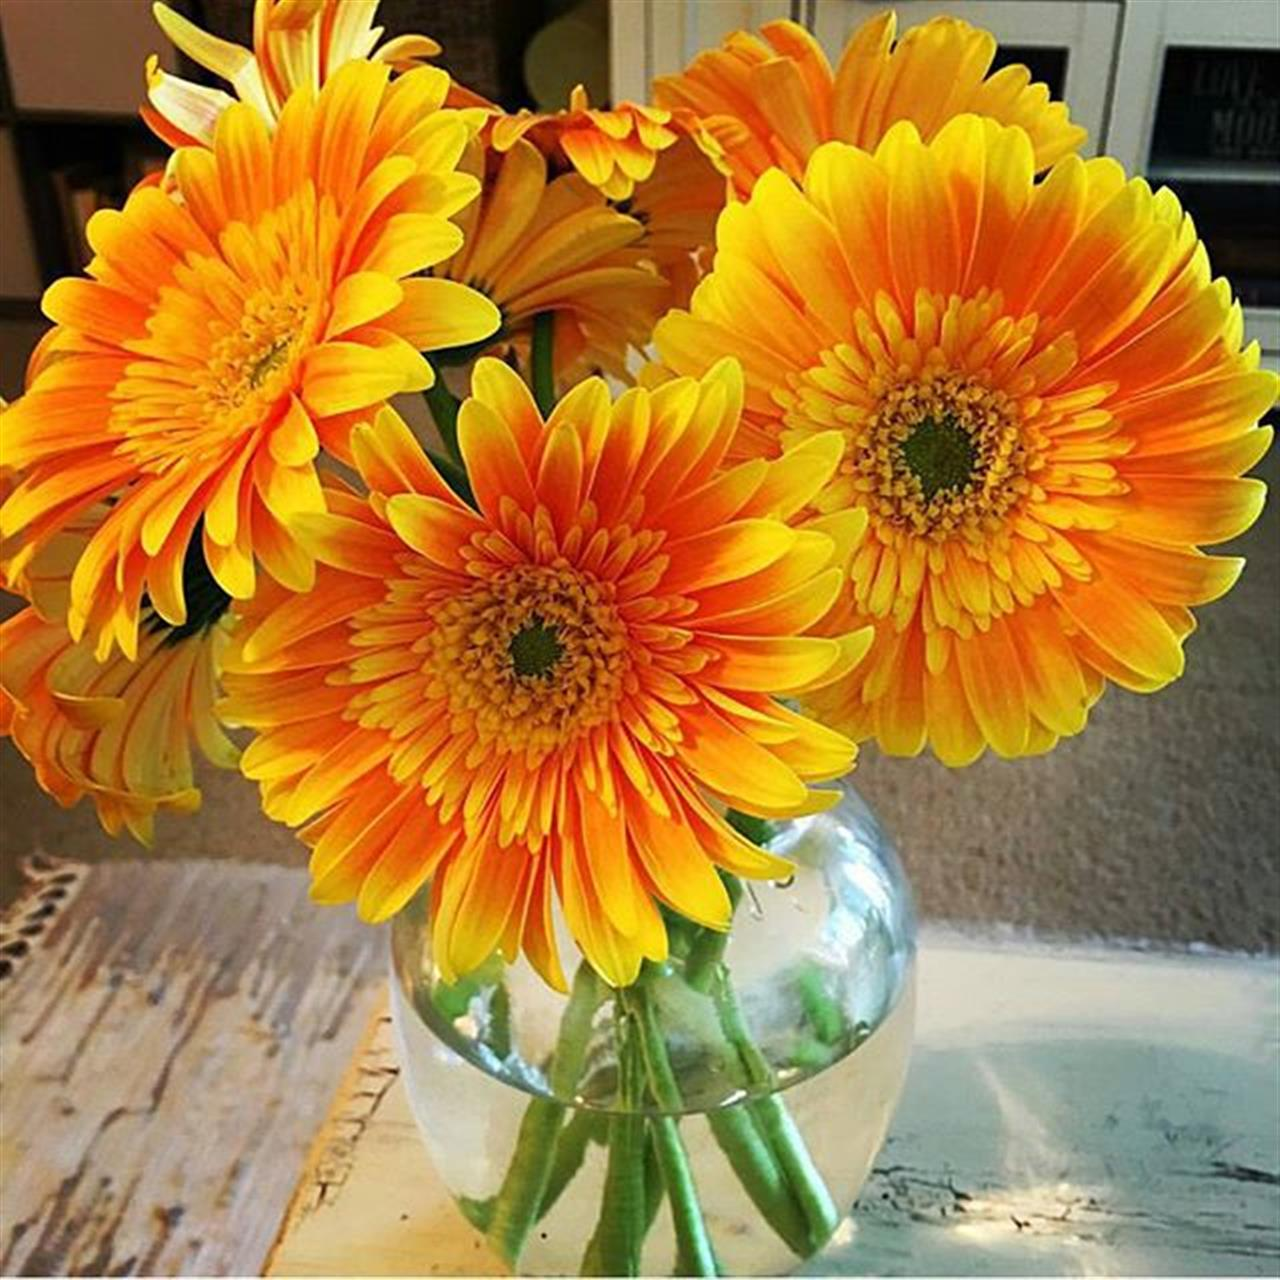 Happy Friday flowers from the Mar Vista Farmers market! Wishing you a wonderful weekend :) Regram from @lalocalrealestate